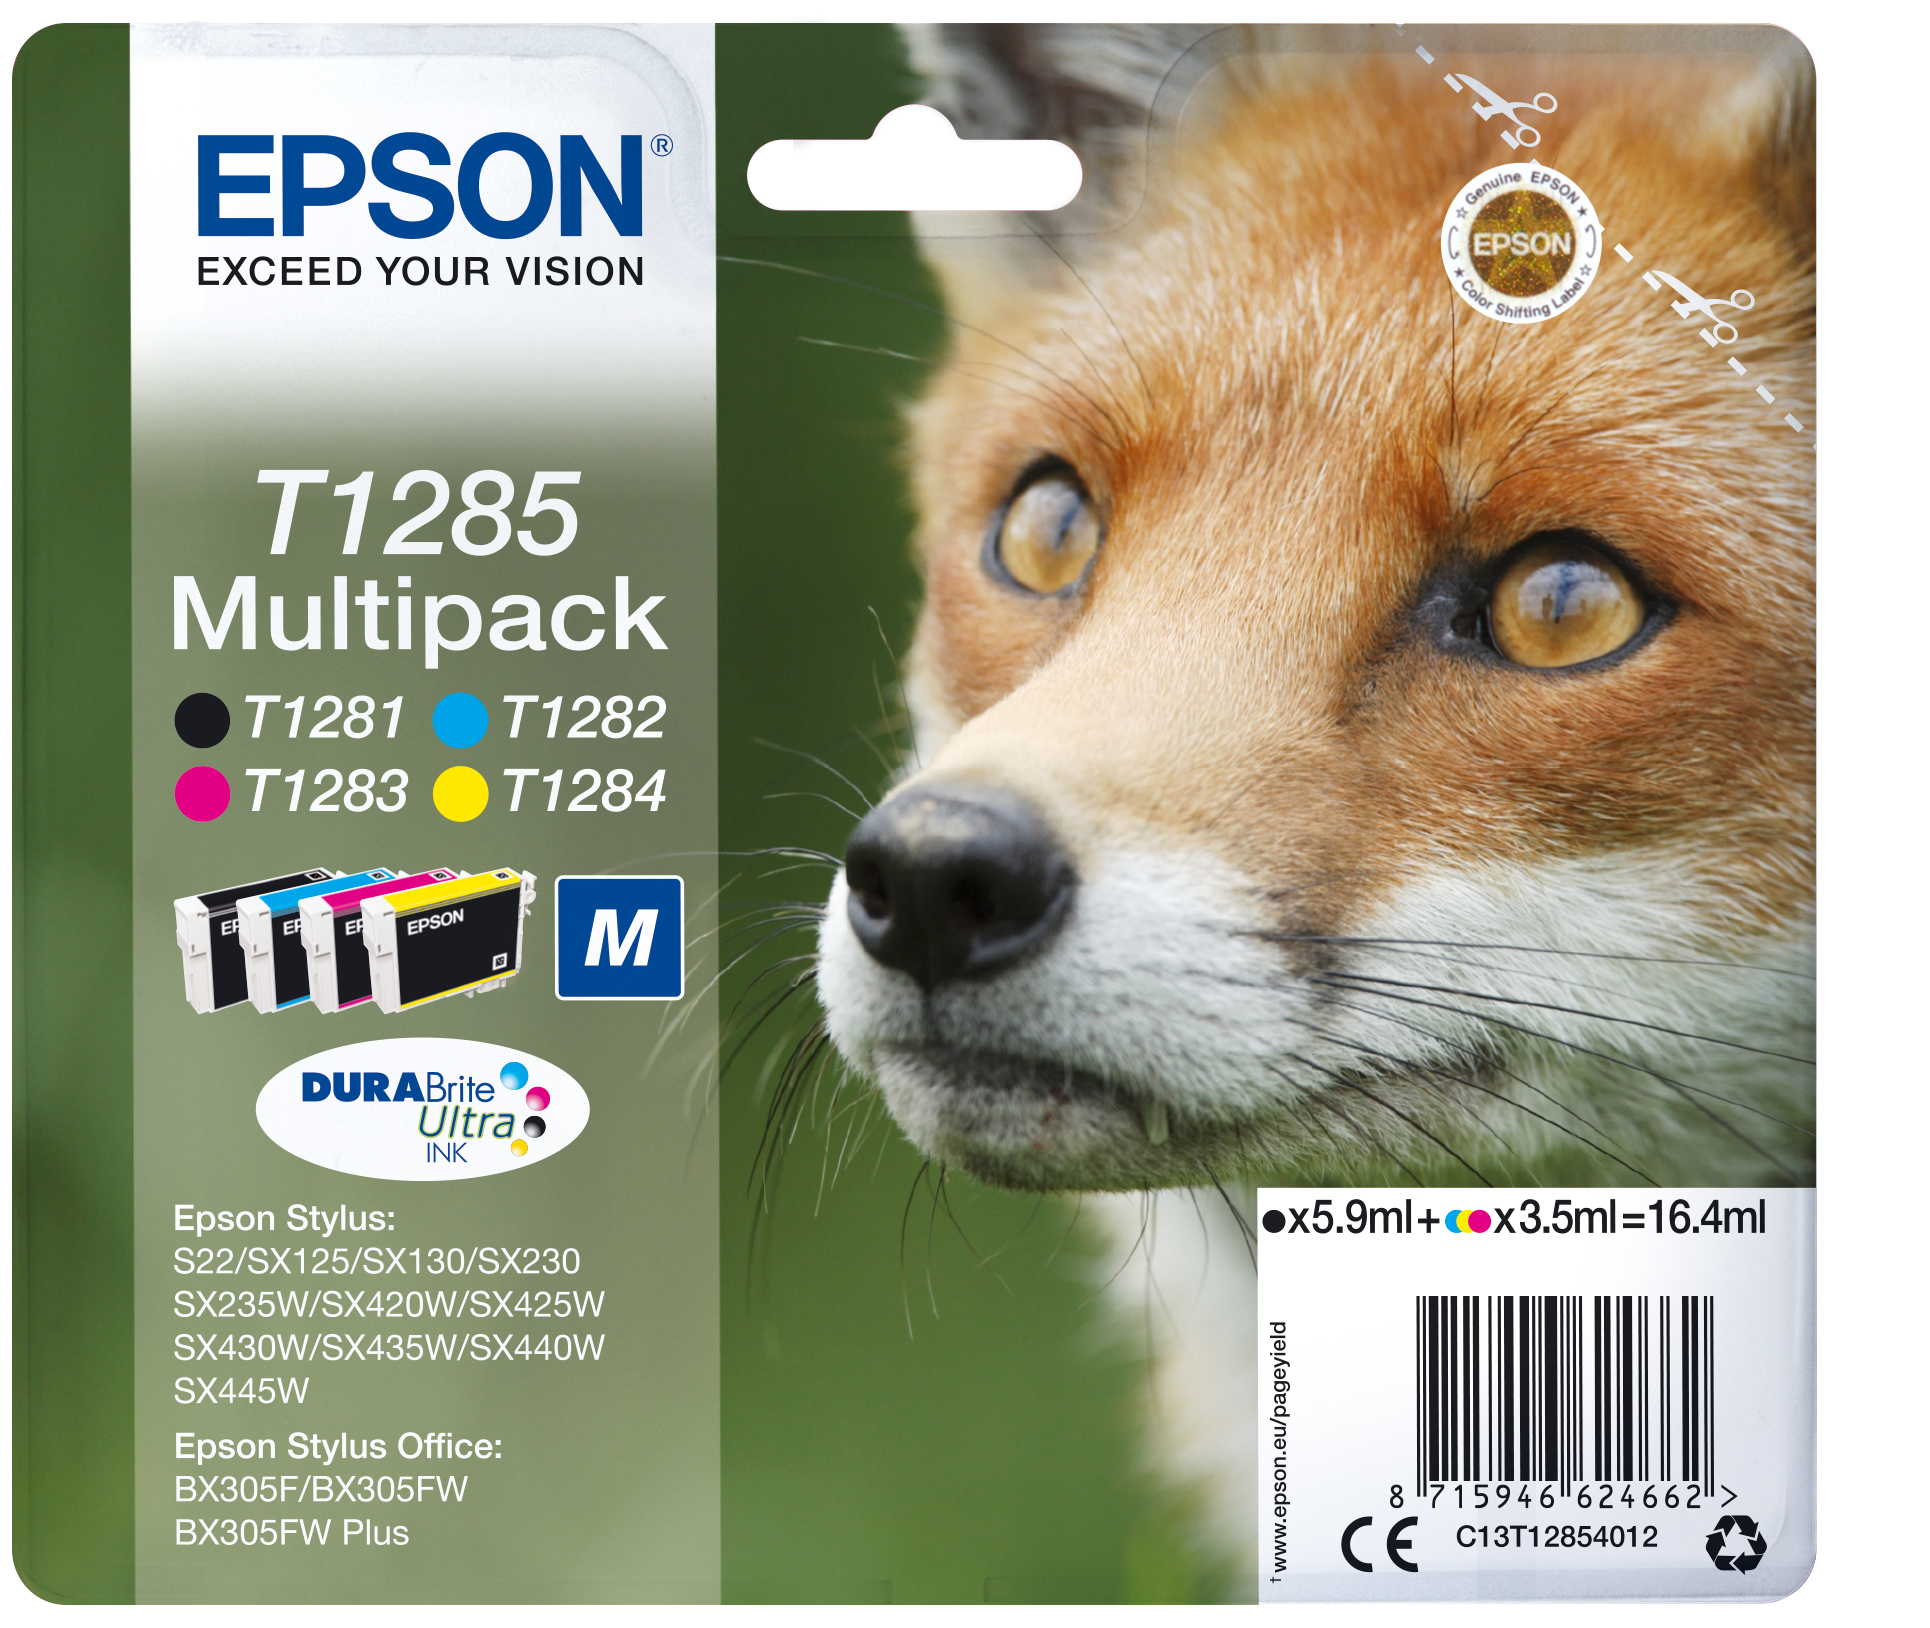 Epson Fox Multipack T1285 4 colores